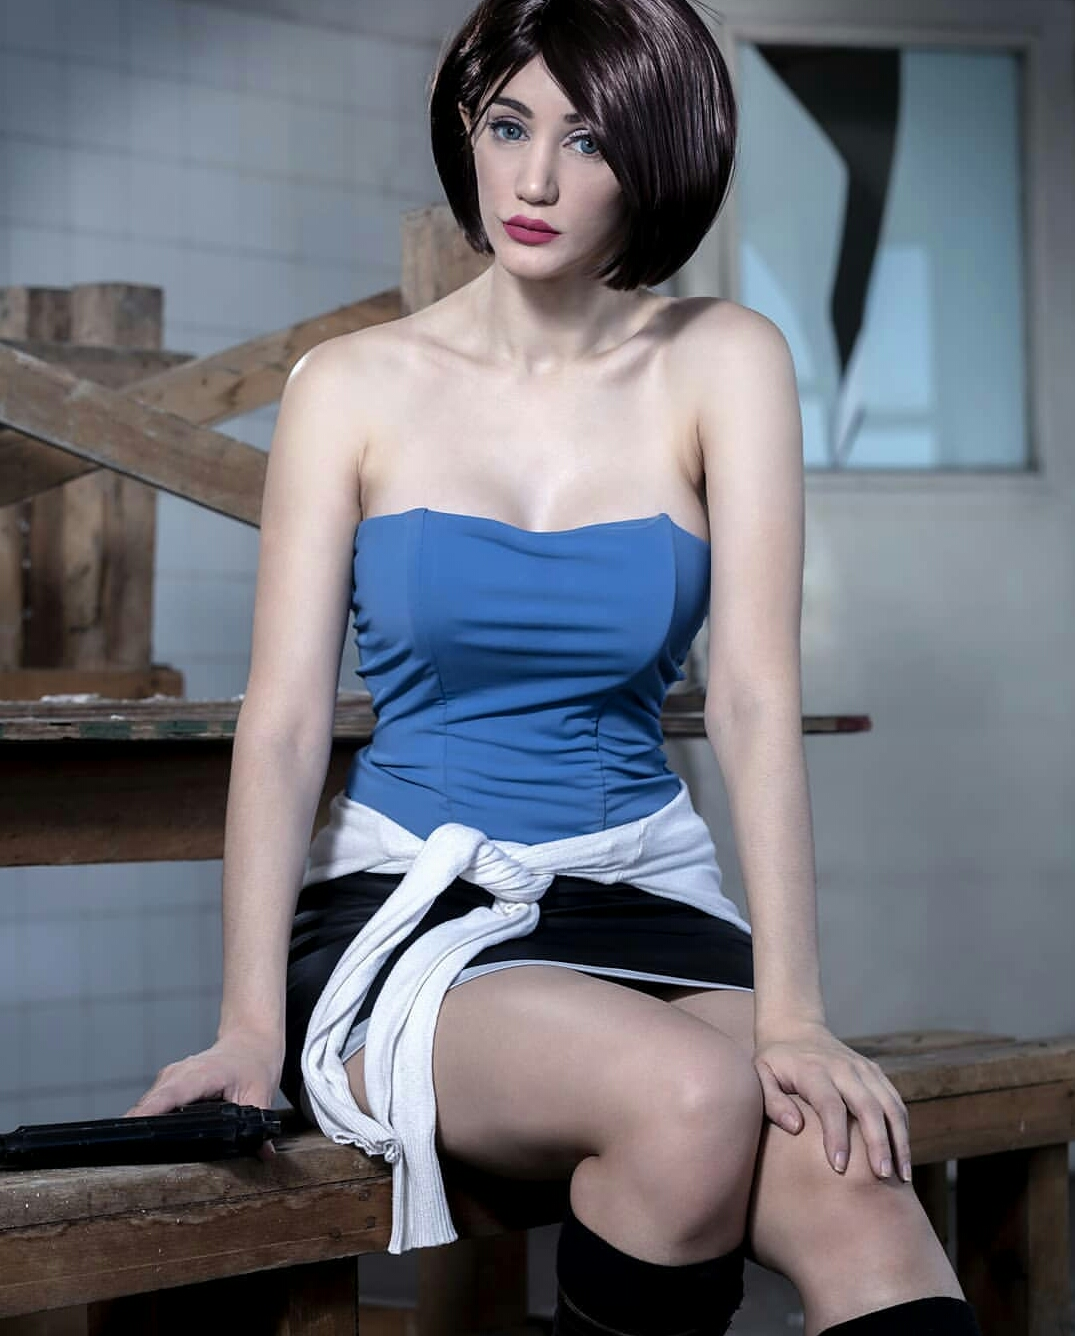 Jill Valentine From The Resident Evil Series By Sophie Valentine